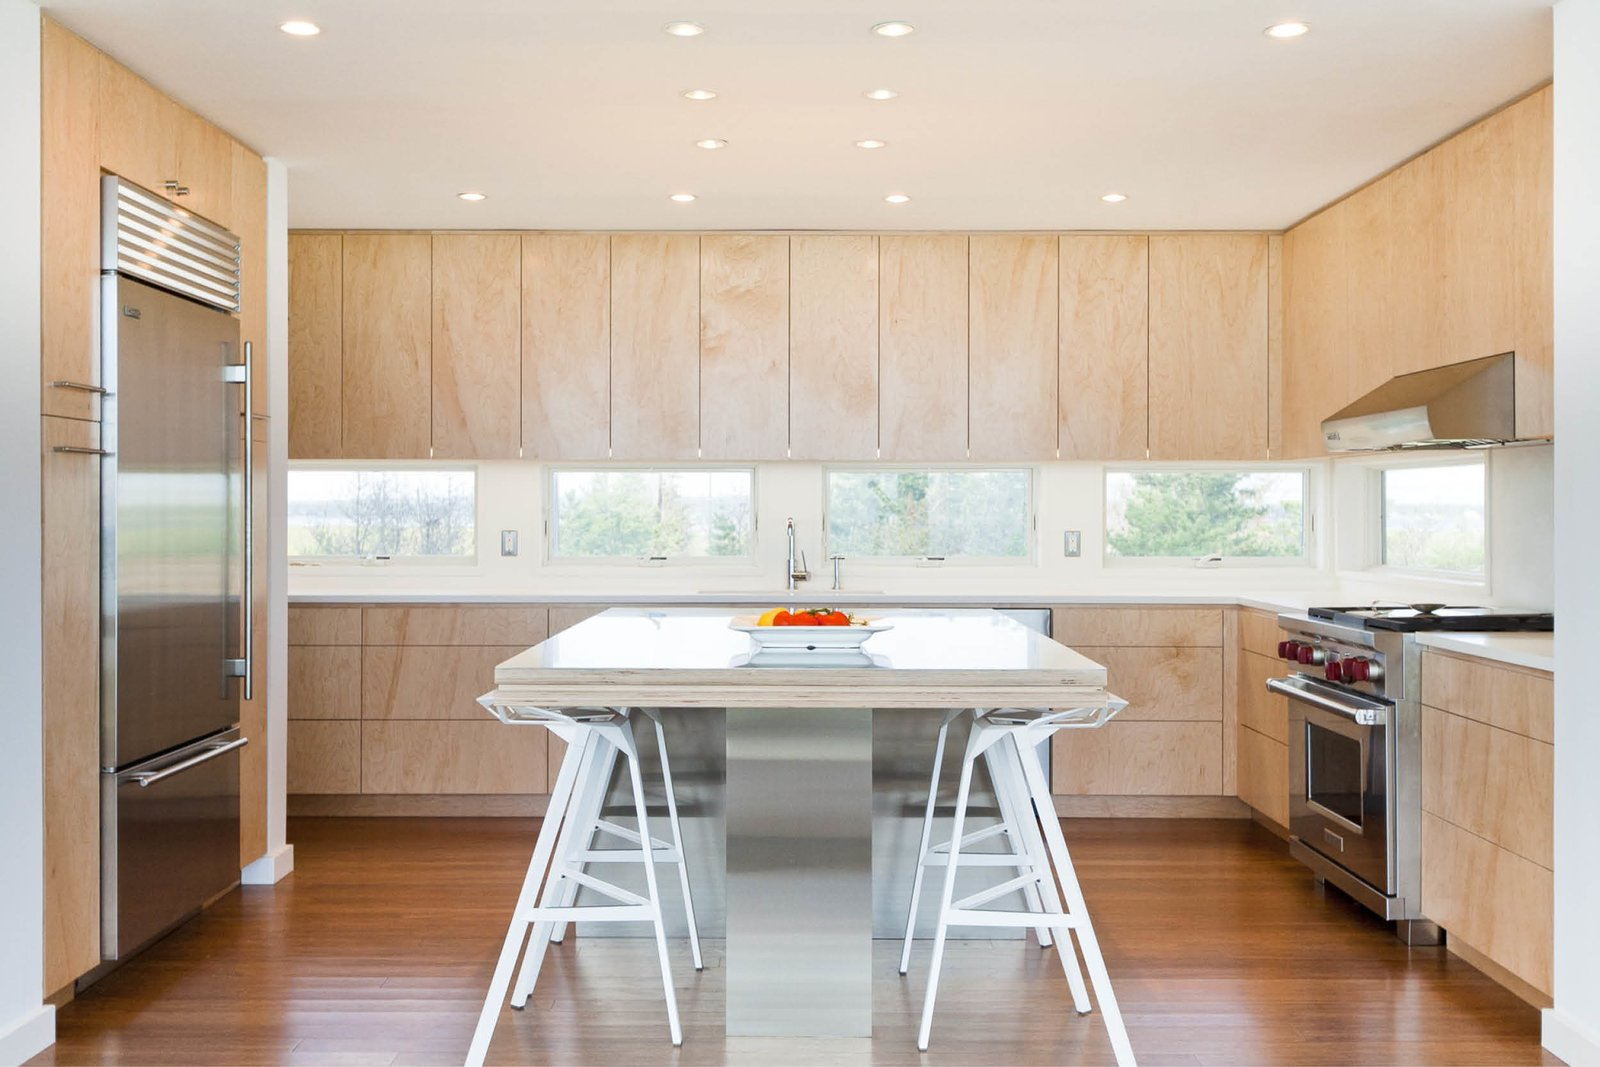 Kitchen cabinets and horizontal slot windows frame views of the bay to the north Tagged: Medium Hardwood, Ceiling, Range Hood, Engineered Quartz, Refrigerator, Wall Oven, Cooktops, Drop In, Wood, Stools, and Dining.  Best Dining Stools Wall Oven Photos from Dune Road Beach House